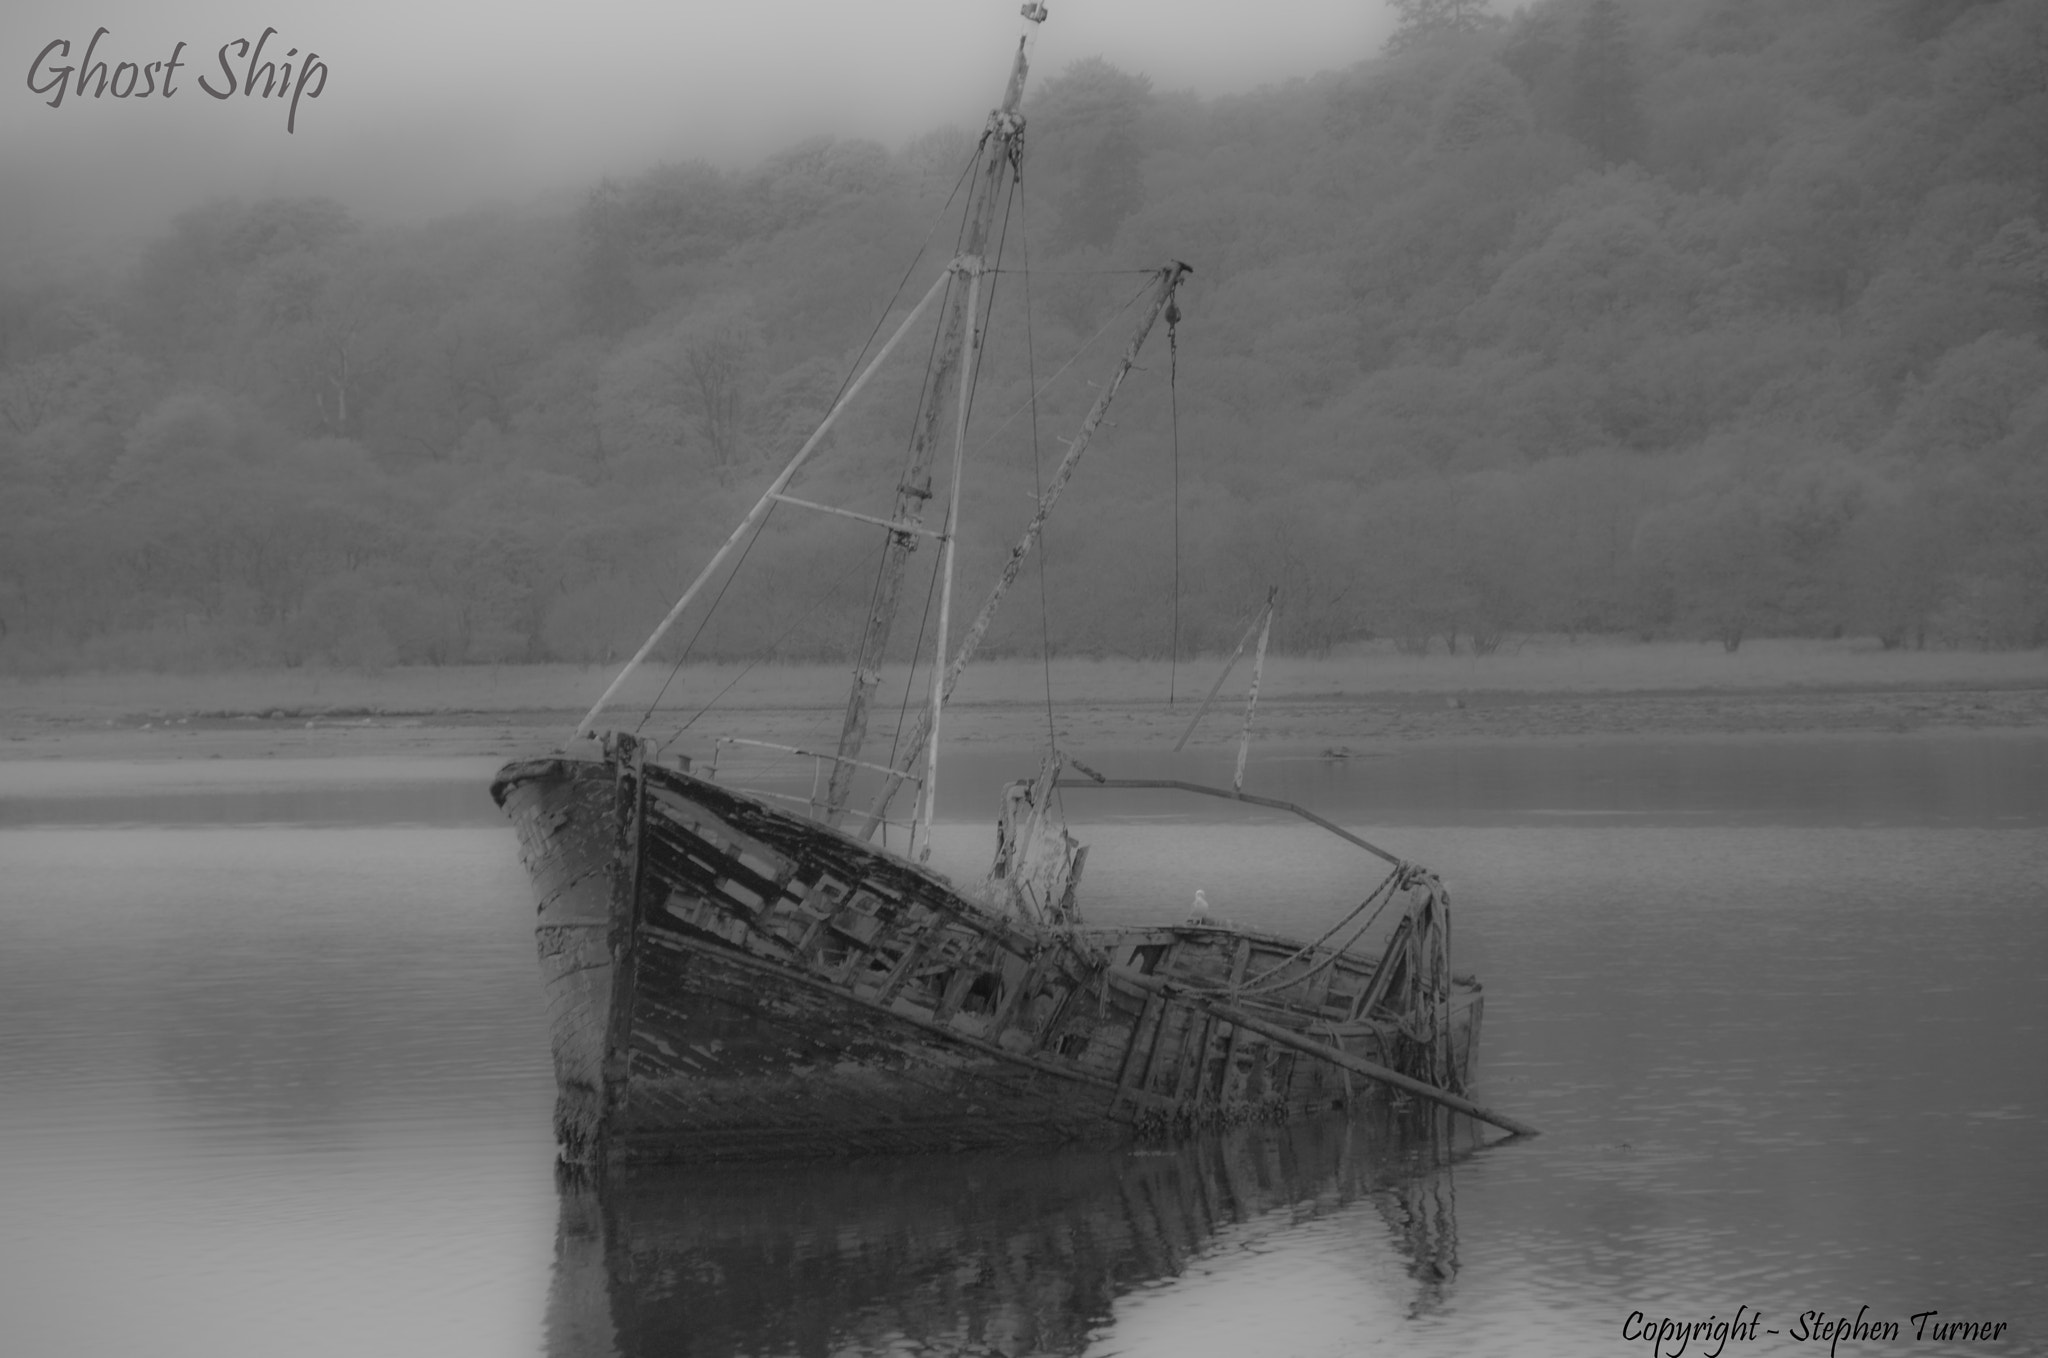 Photograph Ghost Ship by Stephen Turner on 500px